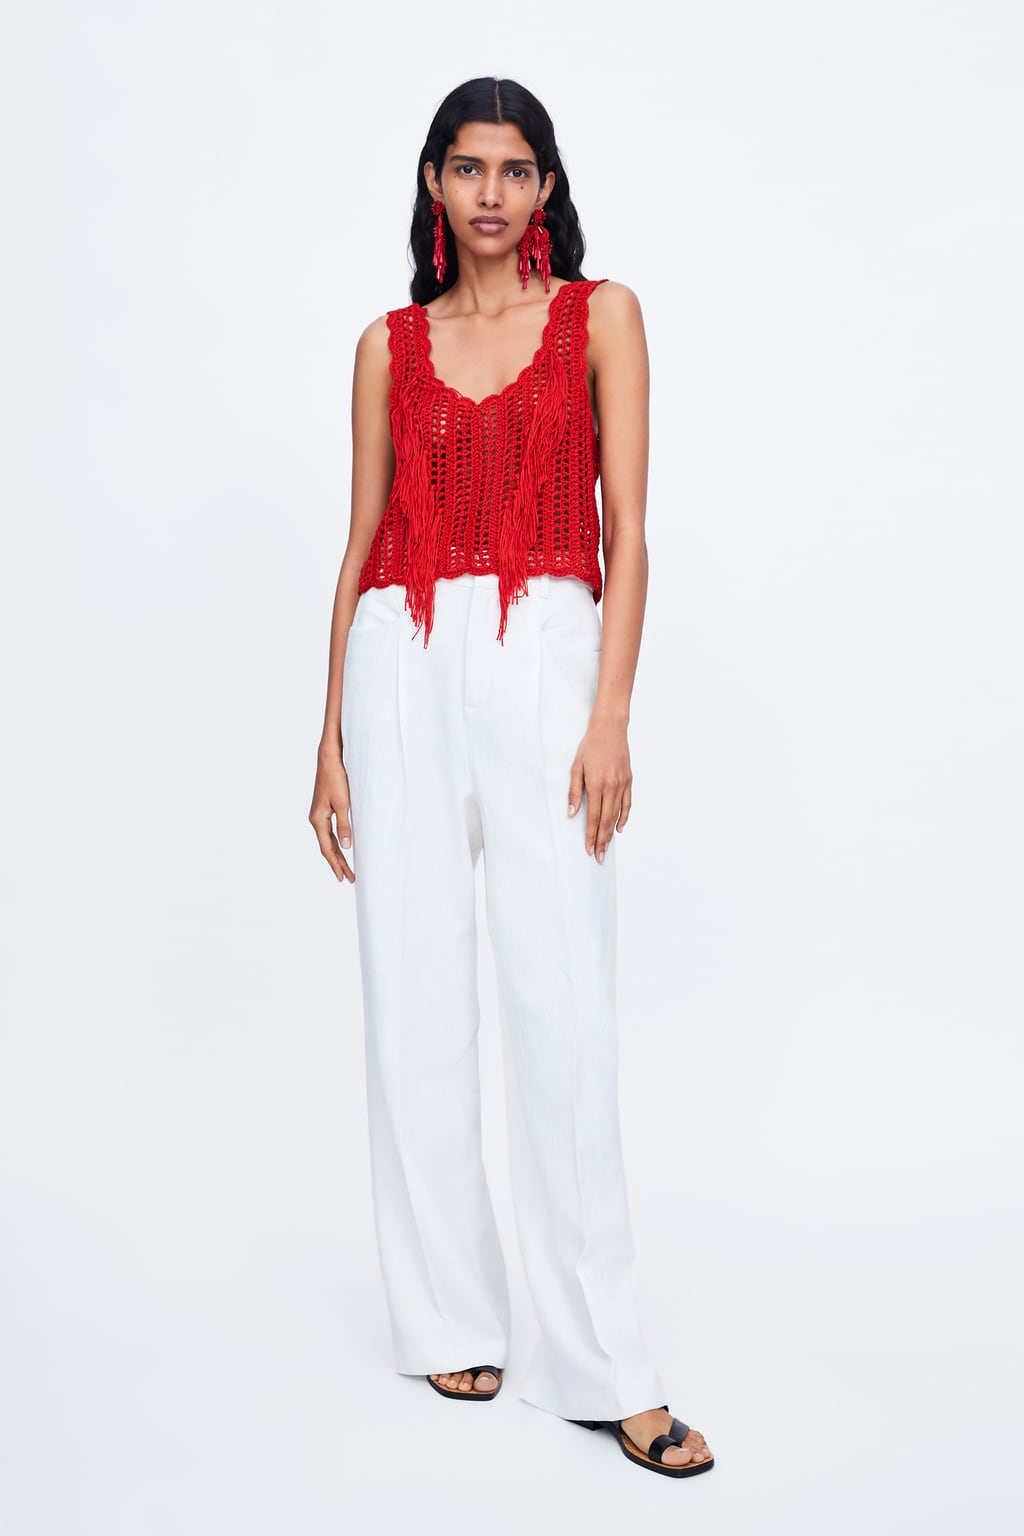 0a295c2b53 FRINGED CROCHETED TOP